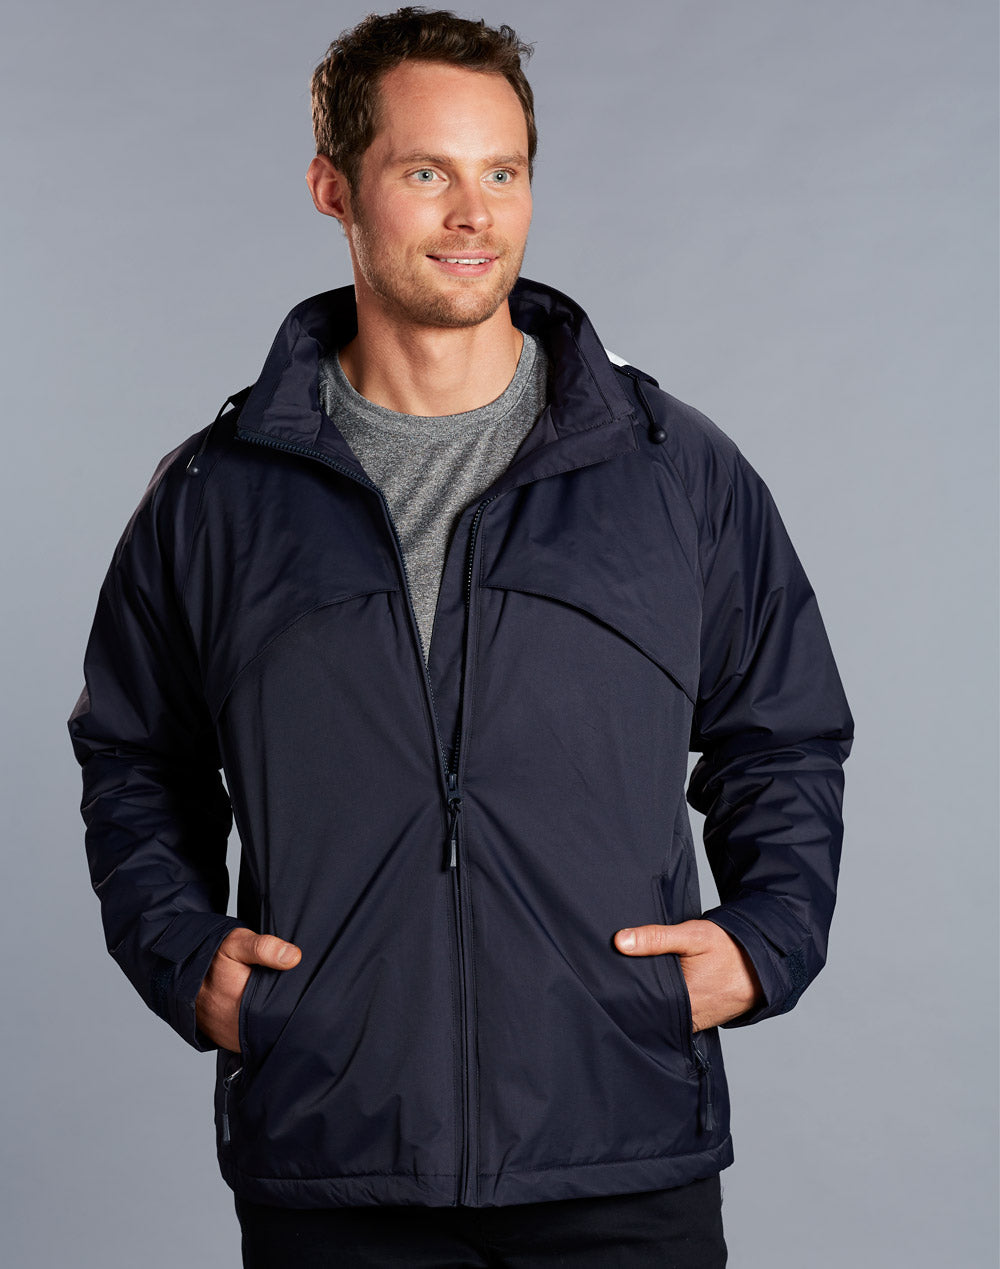 [JK27] Men's Chalet Jacket